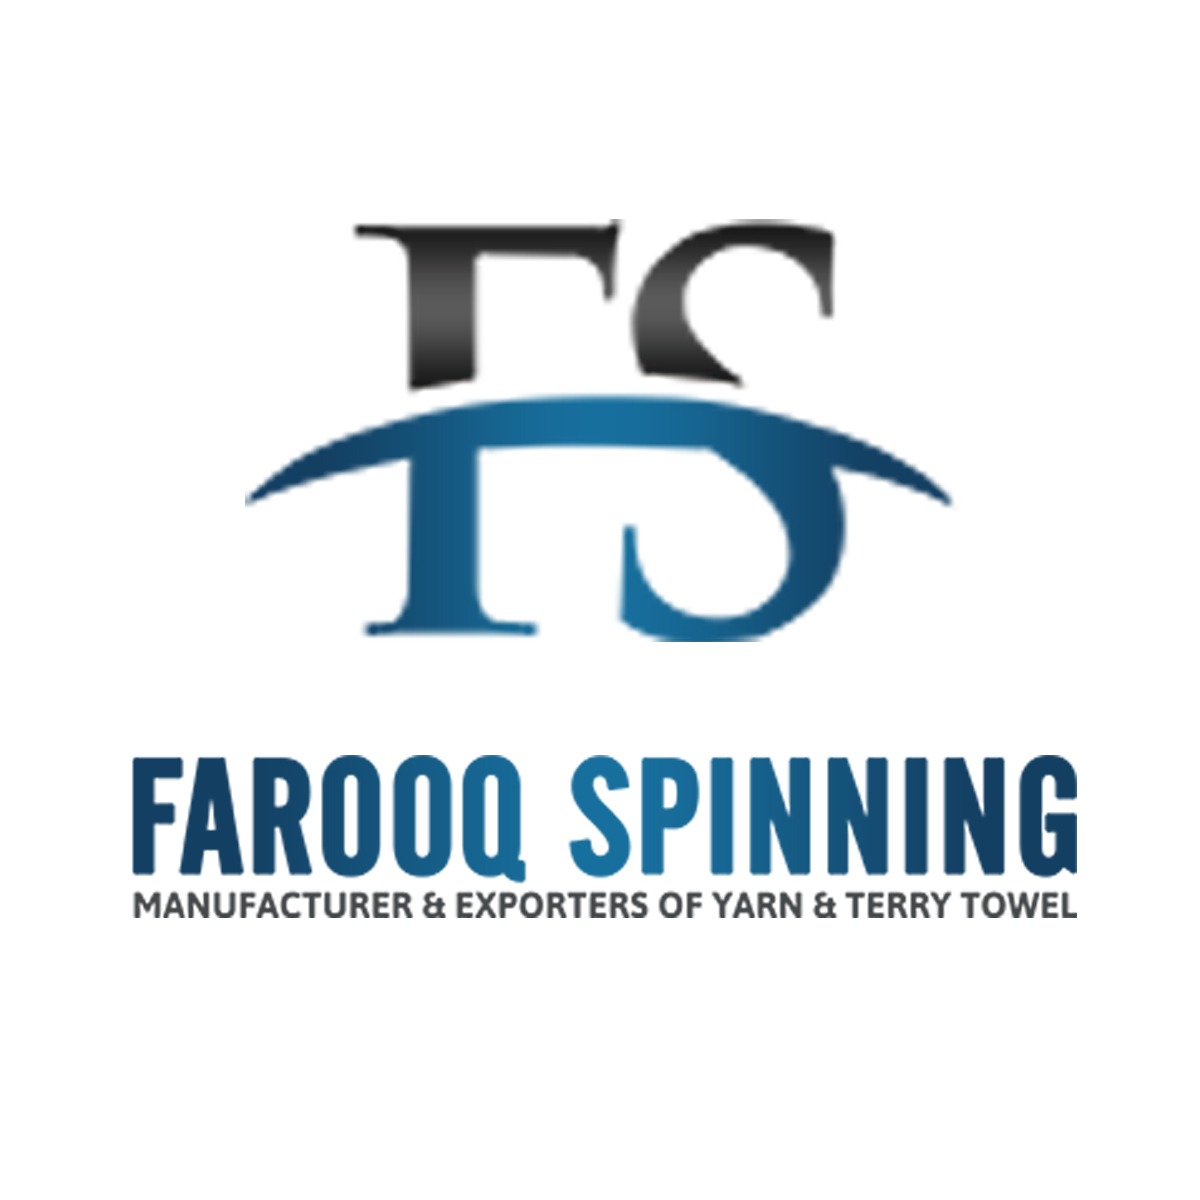 Farooq Spinning Mills Private Limited